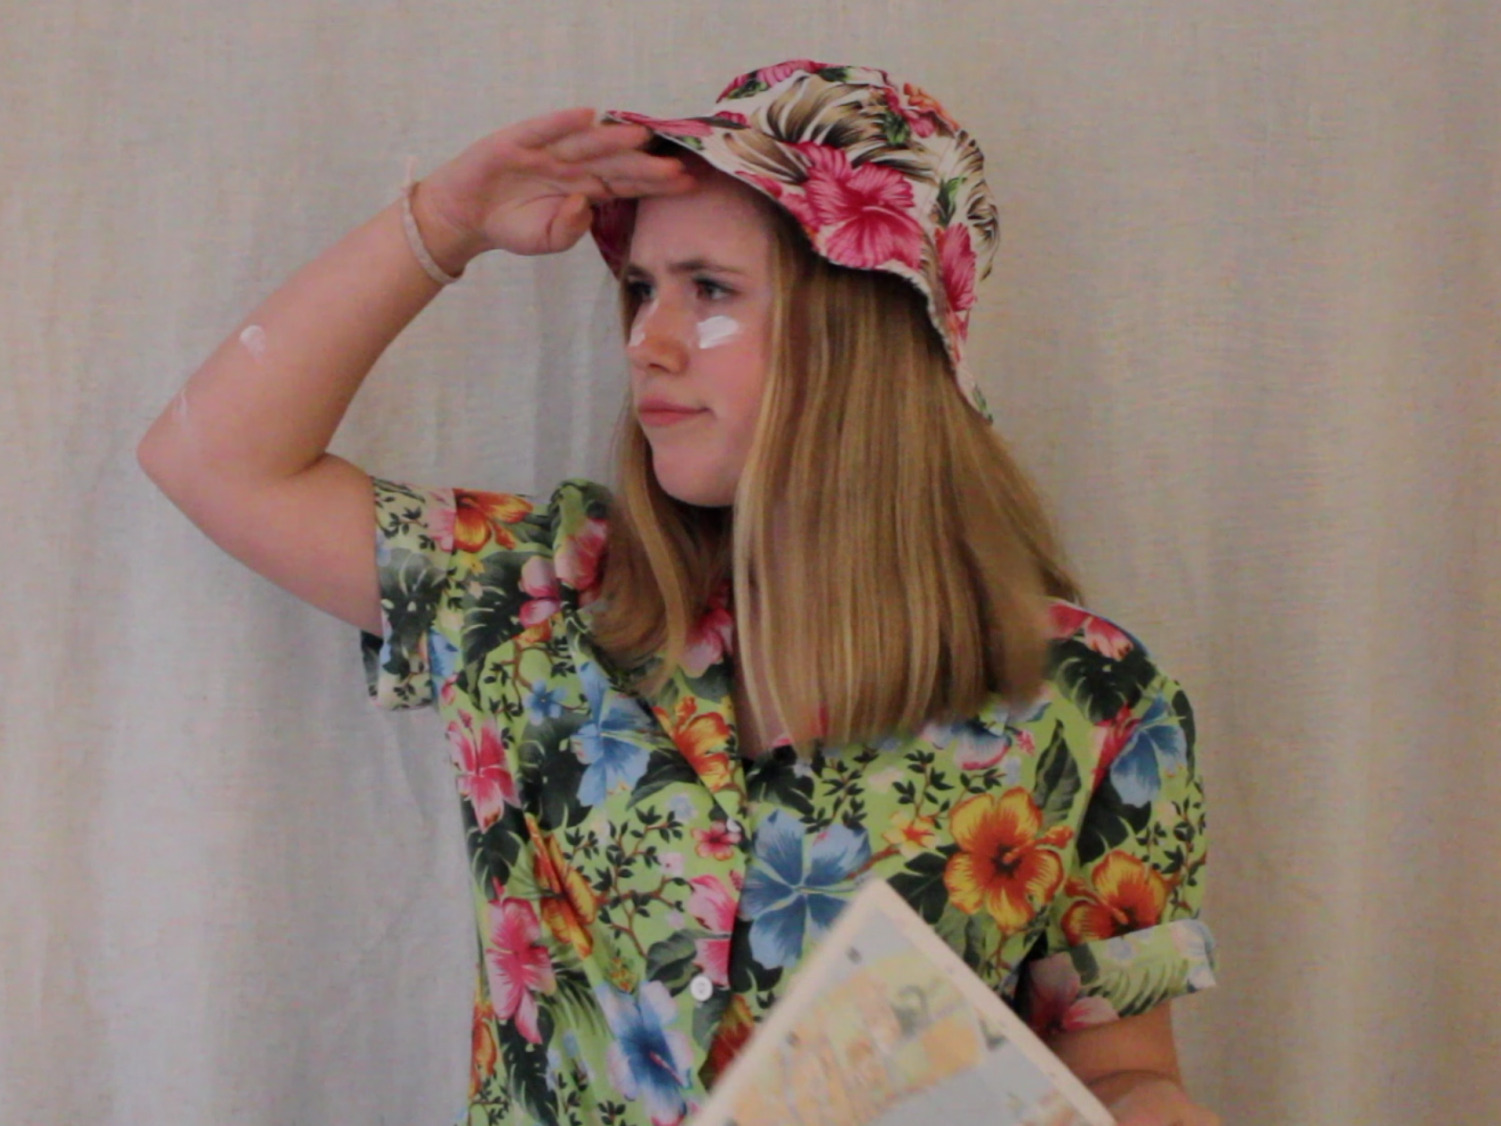 Dressed as a tourist, Tallula Stvan '21 searches far and wide for some unique Halloween costumes.